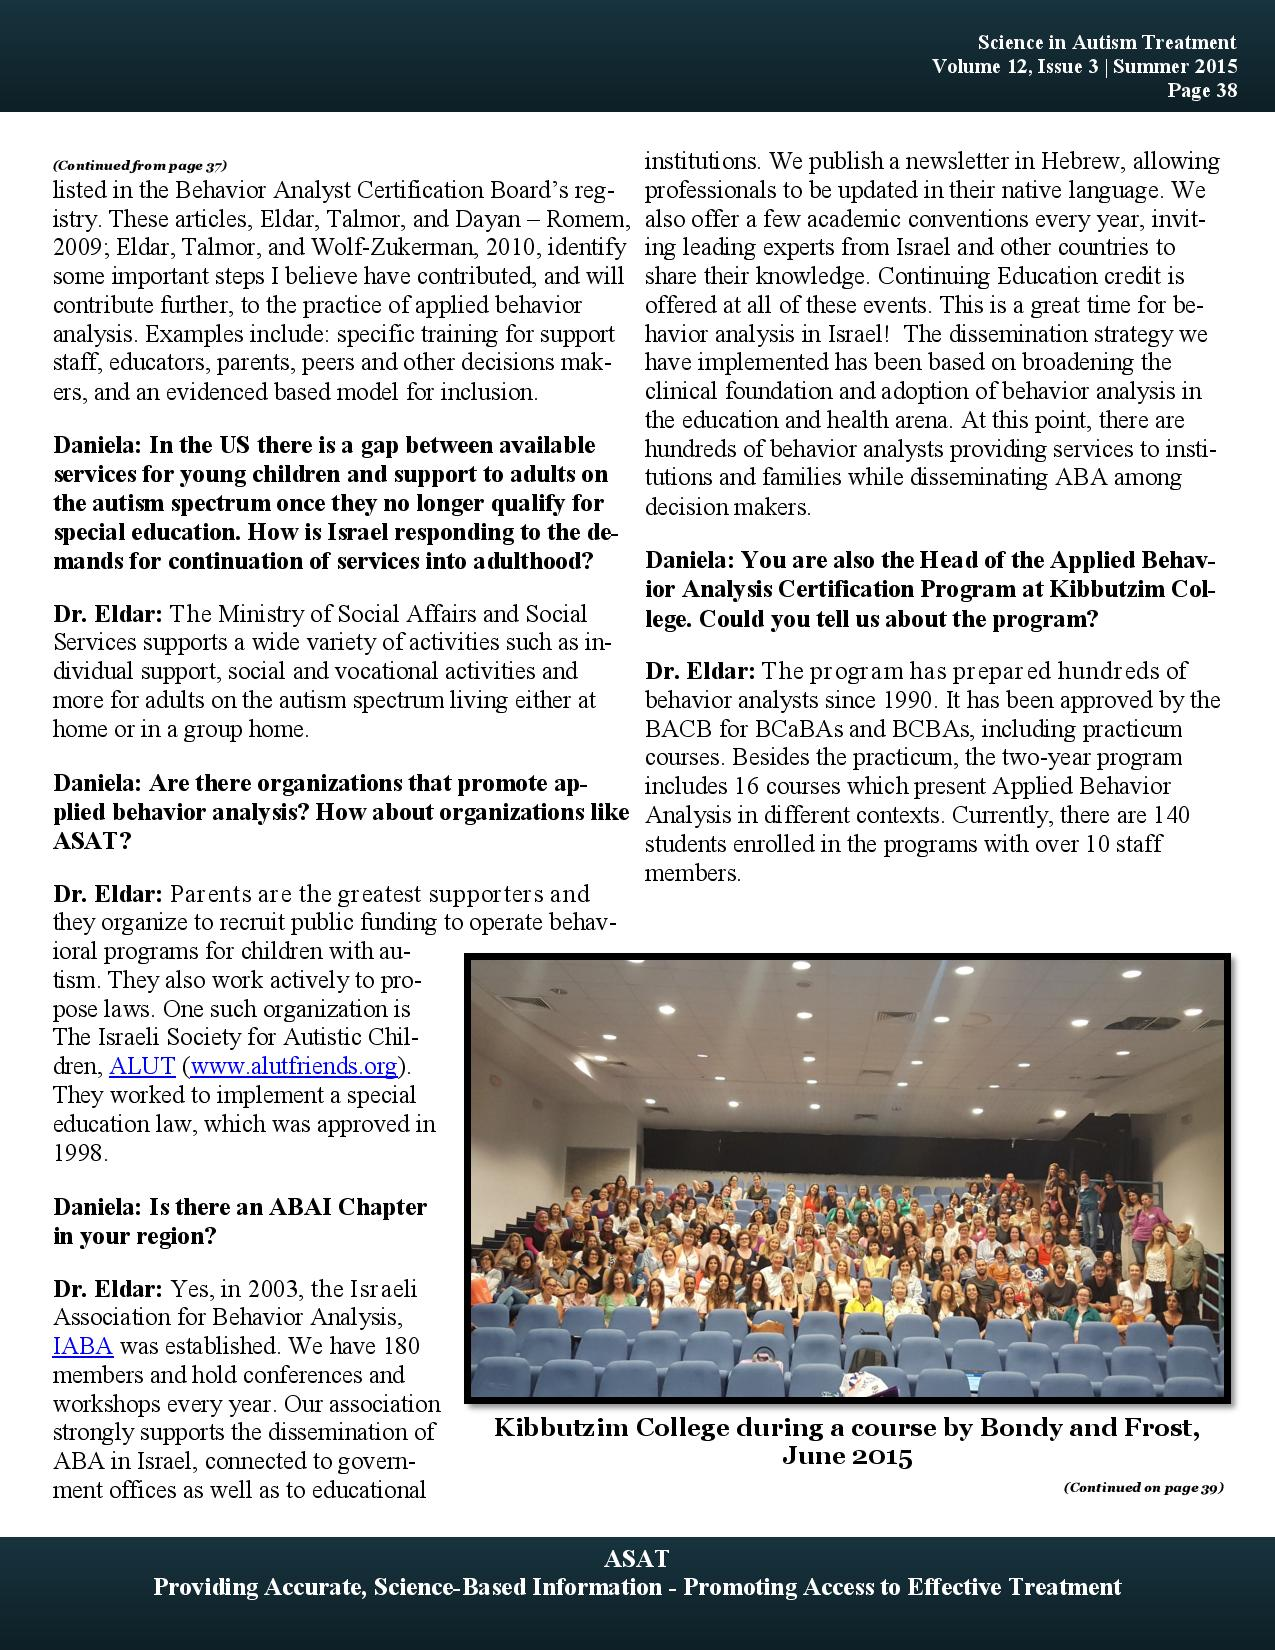 Science in Autism Treatment - Summer2015 - eldar interview-page-038